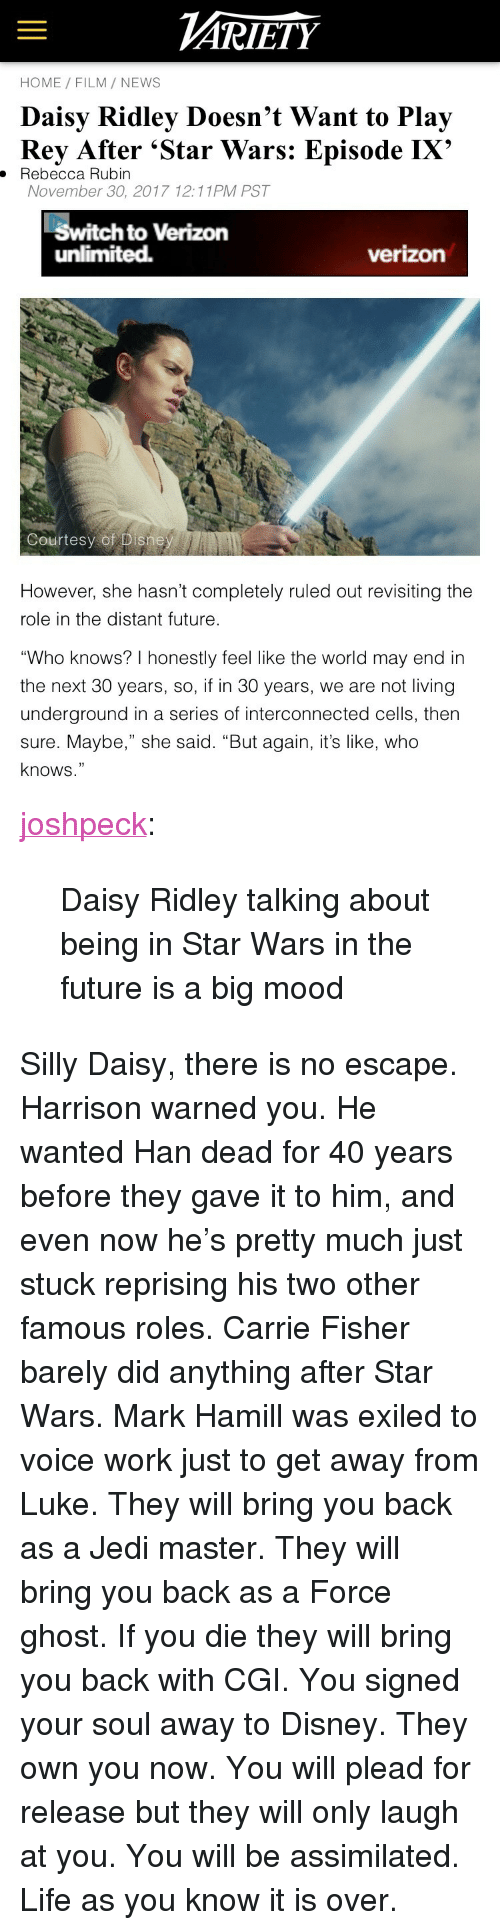 """Carrie Fisher, Daisy Ridley, and Disney: ARİETY  HOME FILM/ NEWS  Daisy Ridley Doesn't Want to Play  Rey After 'Star Wars: Episode IX'  . Rebecca Rubin  November 30, 2017 12:11PM PST  Switch to Verizon  unlimited.  verizon  Courtesy of Disne   However, she hasn't completely ruled out revisiting the  role in the distant future  """"Who knows? I honestly feel like the world may end in  the next 30 years, so, if in 30 years, we are not living  underground in a series of interconnected cells, then  sure. Maybe,"""" she said. """"But again, it's like, who  knows."""" <p><a href=""""http://joshpeckofficial.com/post/168948838043/daisy-ridley-talking-about-being-in-star-wars-in"""" class=""""tumblr_blog"""">joshpeck</a>:</p>  <blockquote><p>Daisy Ridley talking about being in Star Wars in the future is a big mood</p></blockquote>  <p>Silly Daisy, there is no escape. Harrison warned you. He wanted Han dead for 40 years before they gave it to him, and even now he's pretty much just stuck reprising his two other famous roles. Carrie Fisher barely did anything after Star Wars. Mark Hamill was exiled to voice work just to get away from Luke. They will bring you back as a Jedi master. They will bring you back as a Force ghost. If you die they will bring you back with CGI. You signed your soul away to Disney. They own you now. You will plead for release but they will only laugh at you. You will be assimilated. Life as you know it is over.</p>"""